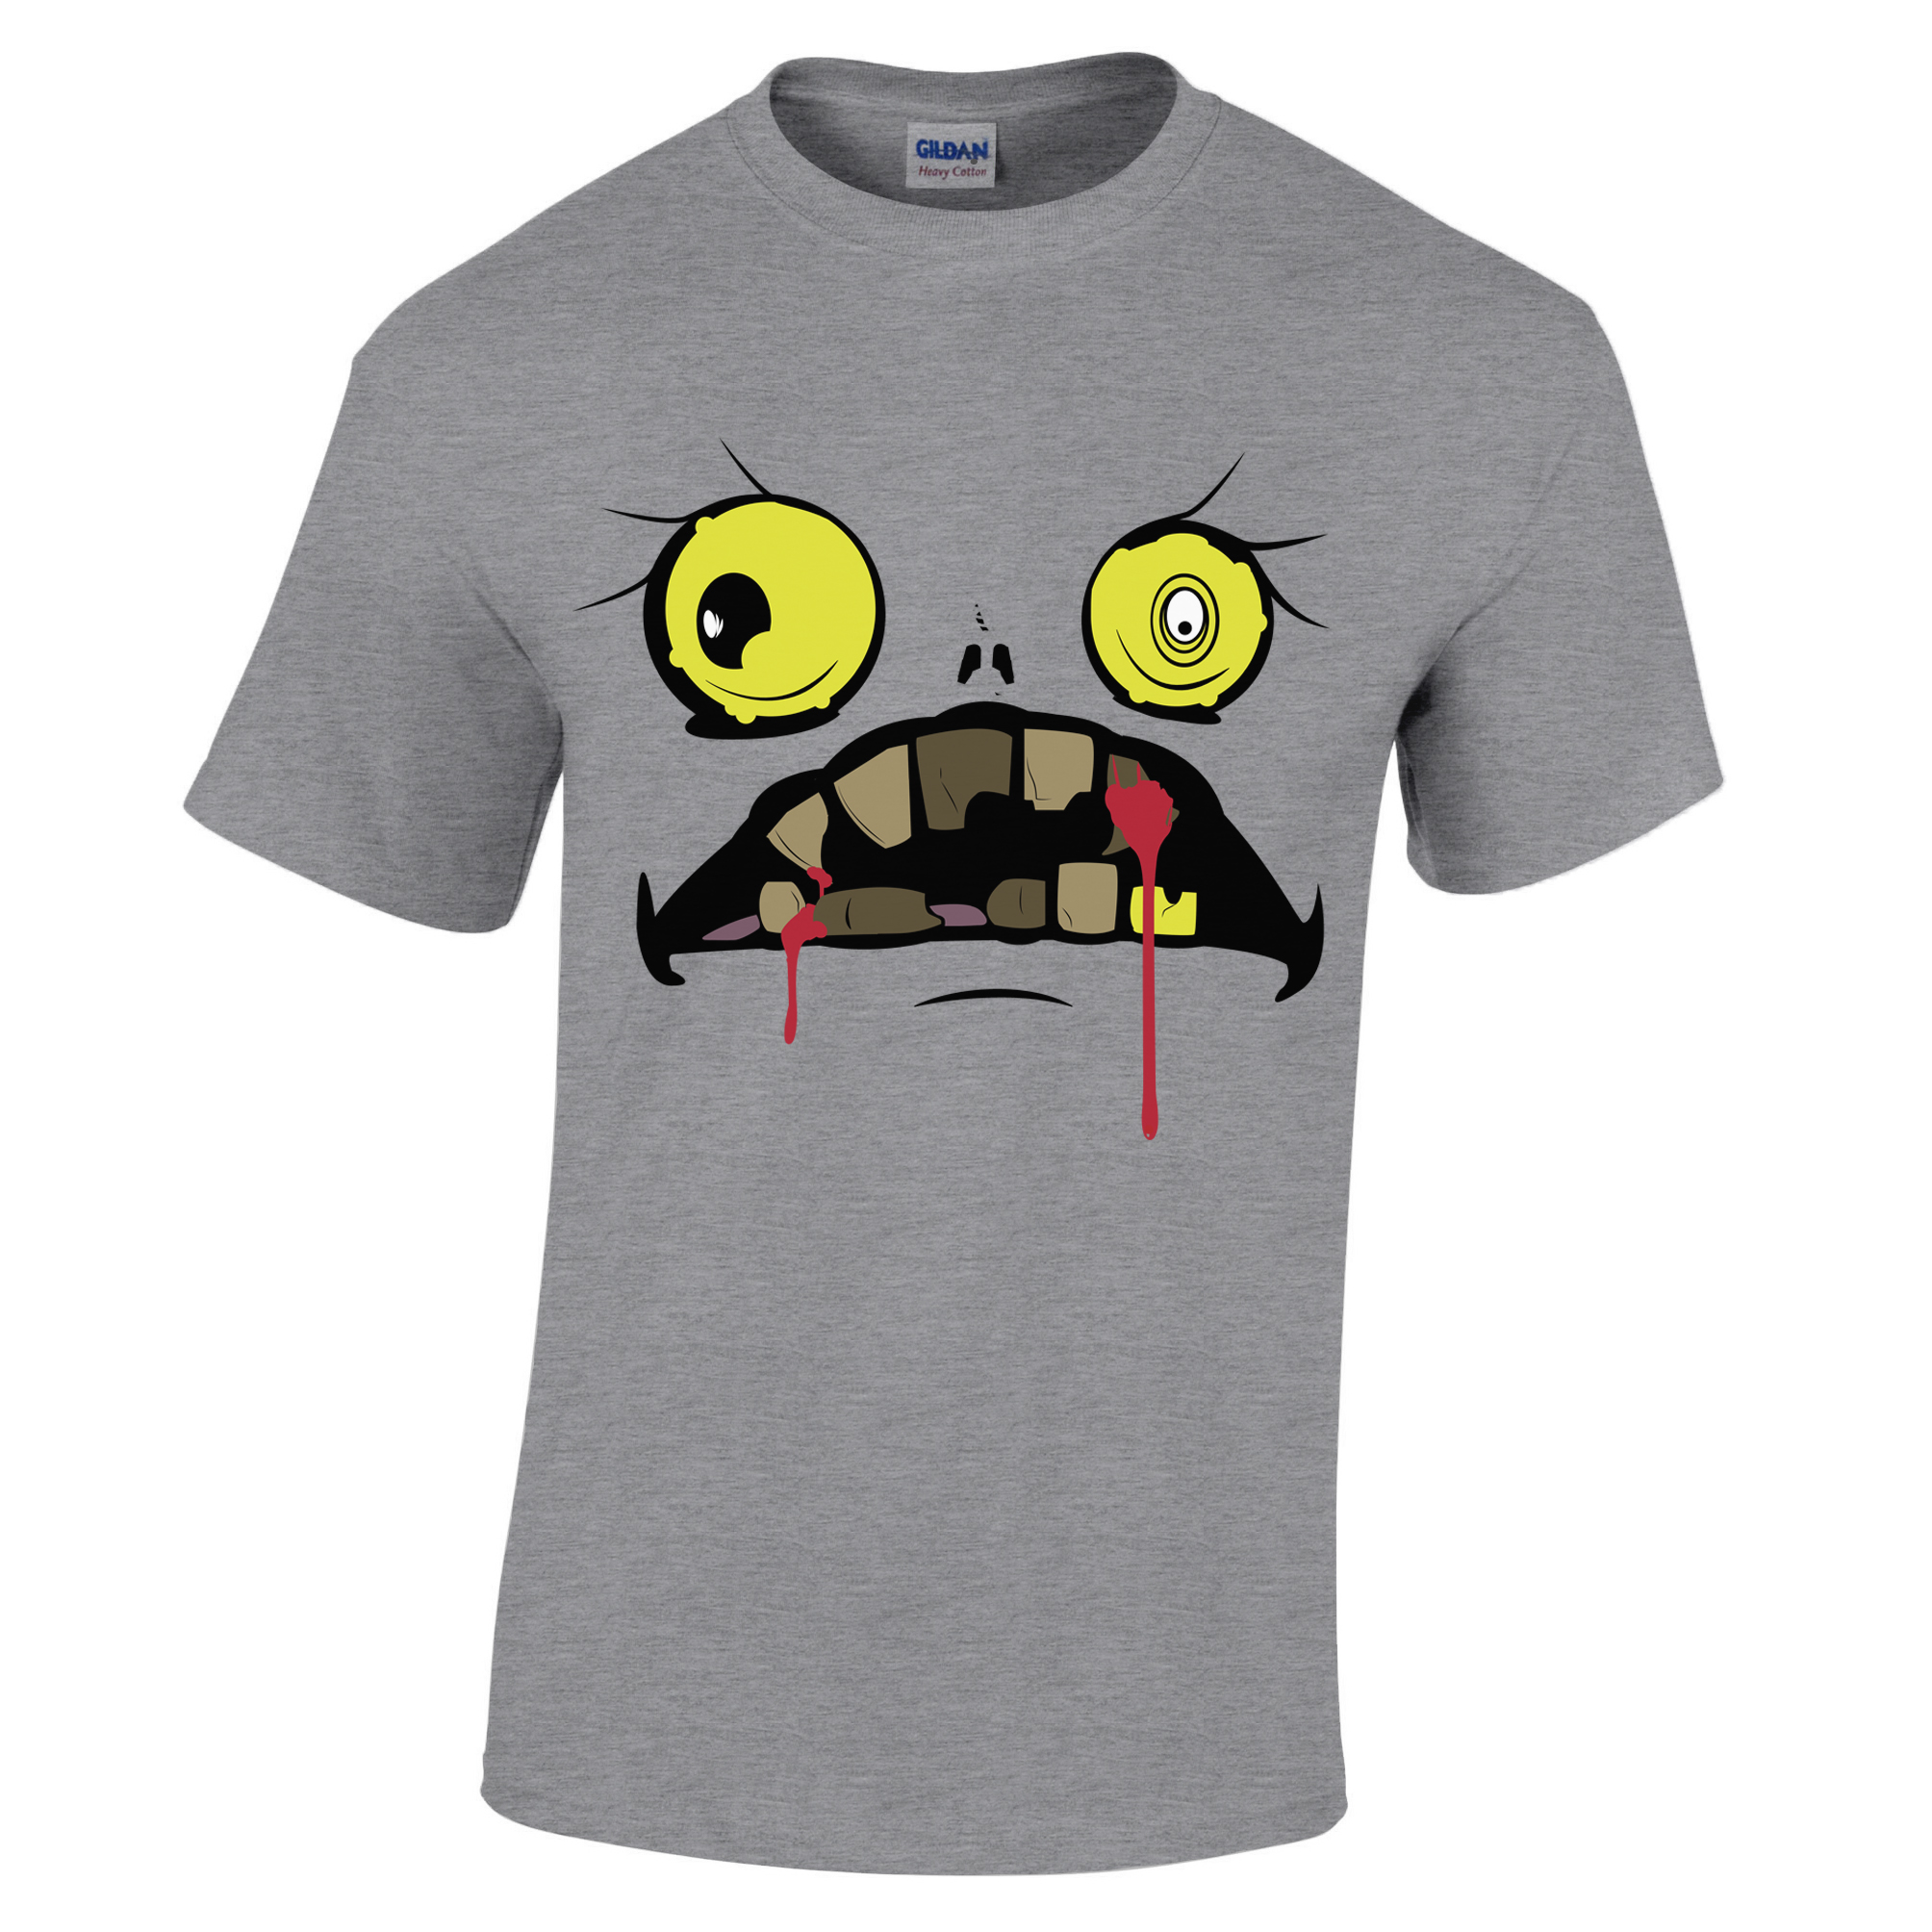 Simpsons Halloween Shirt.Scary Halloween Funny Face T Shirt Bloody Fanged Ghoul Monster